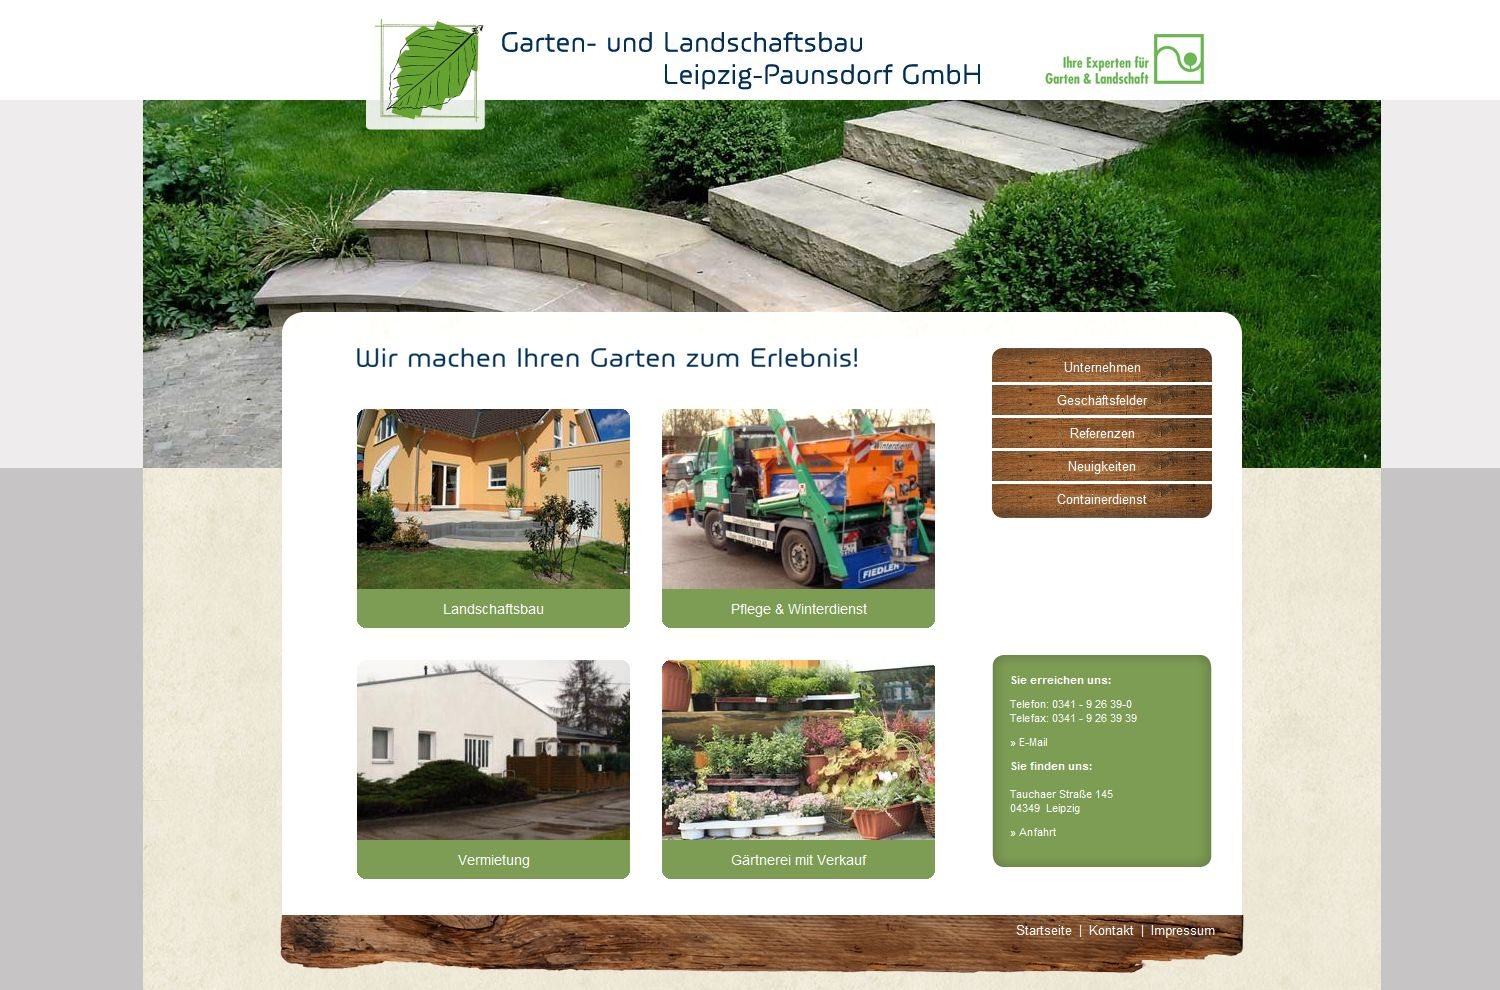 garten und landschaftsbau leipzig paunsdorf gmbh artvantage webdesign printdesign leipzig. Black Bedroom Furniture Sets. Home Design Ideas